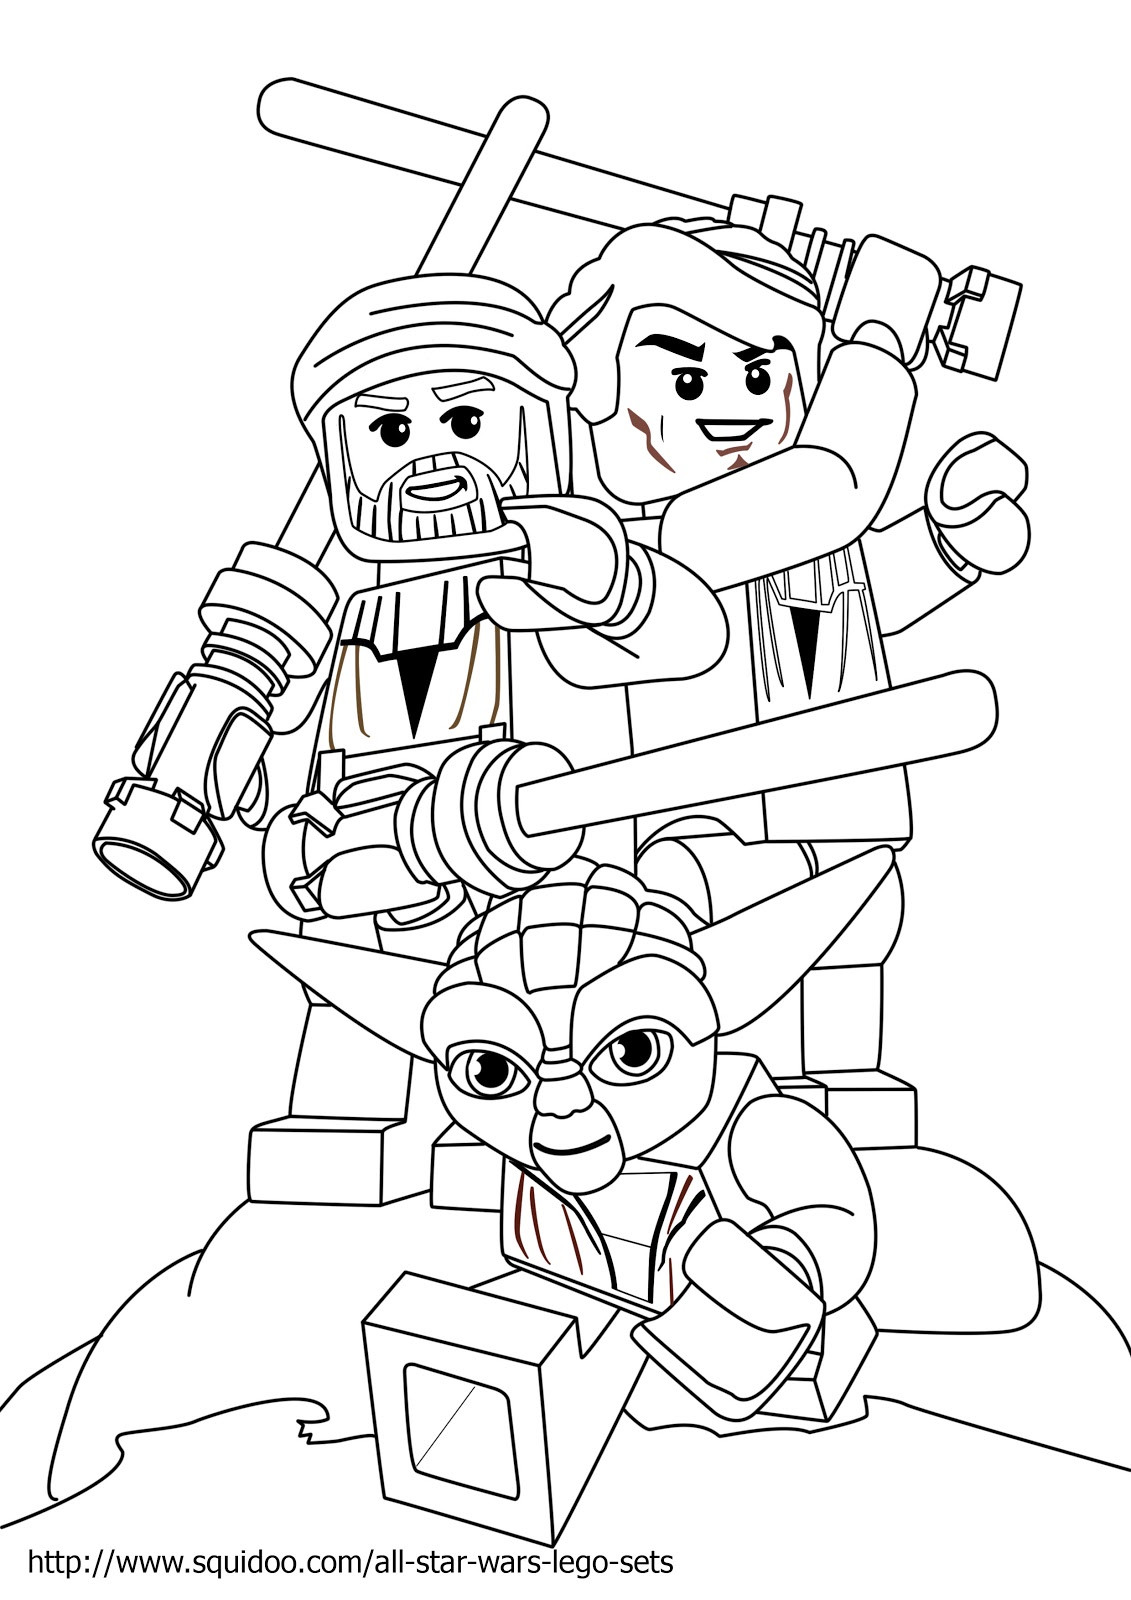 Lego Star Wars Coloring Pages To Print  Free Coloring Pages Lego Star Wars